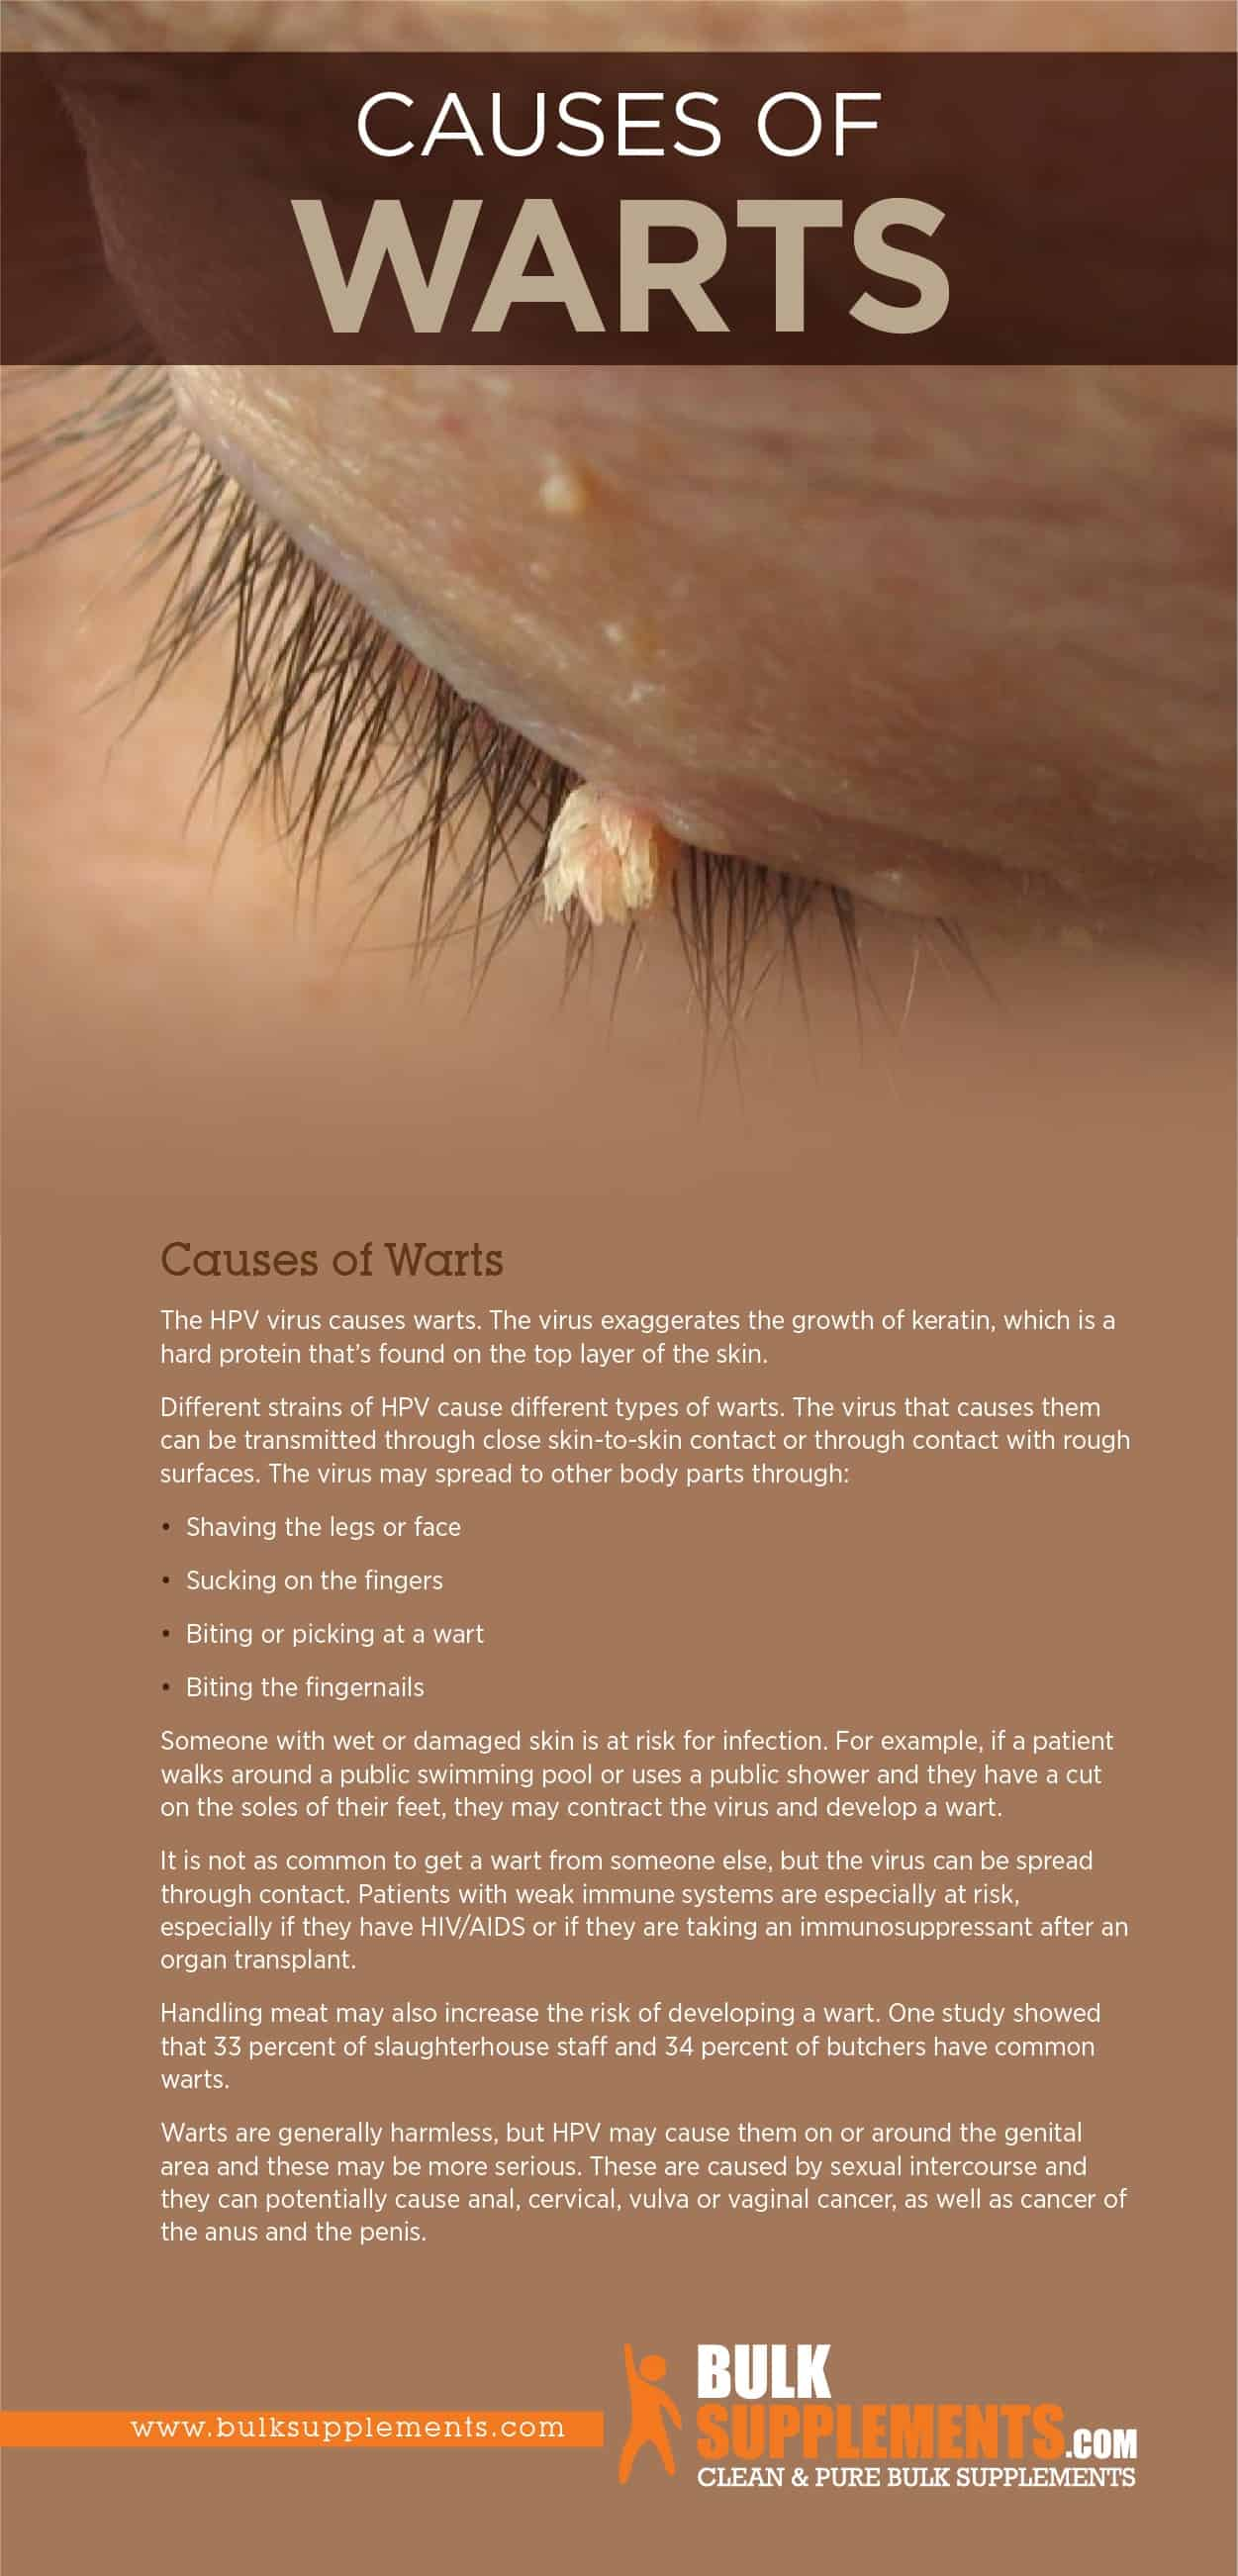 Causes of Warts